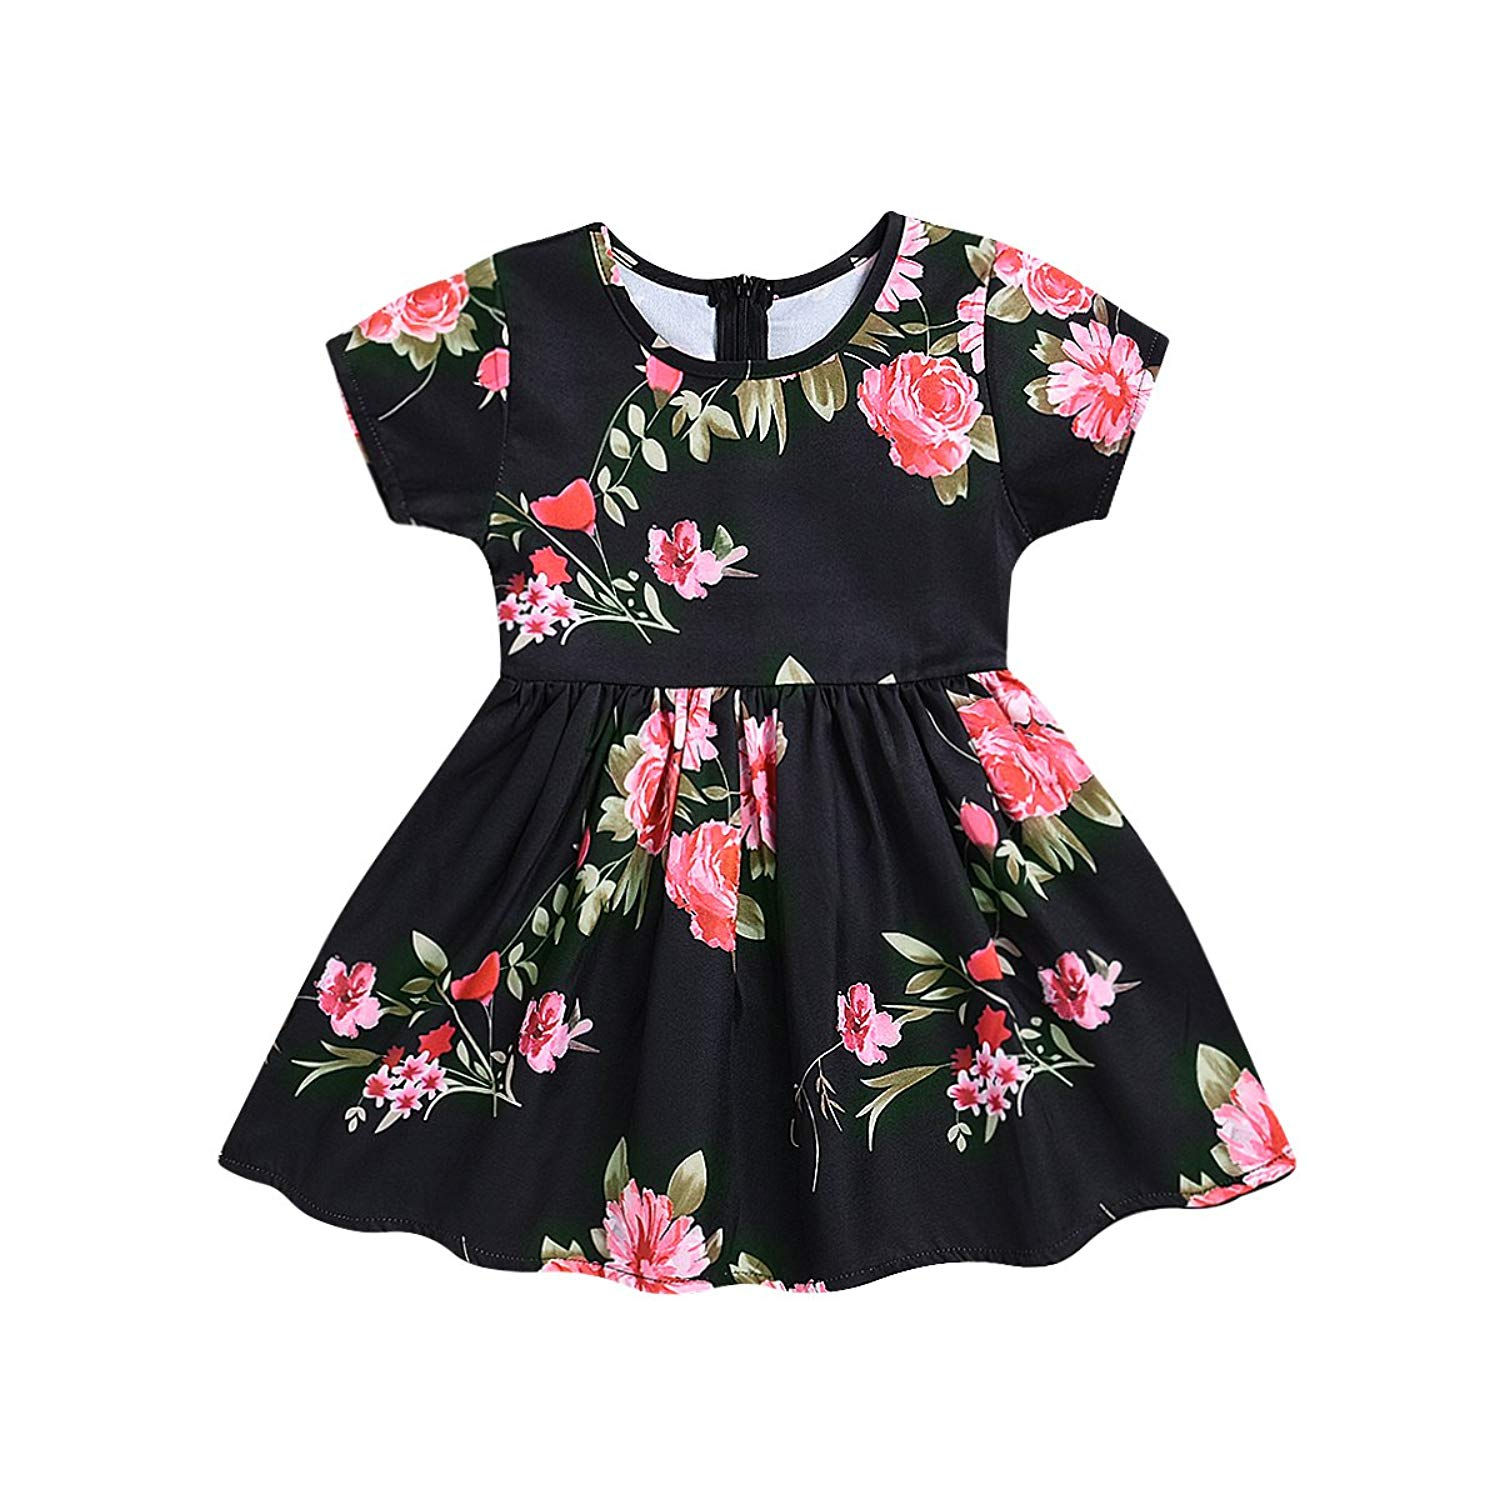 puseky Baby Girl Big Peony Flower One Piece Short Sleeve Fluffy Dress Floral Sundress